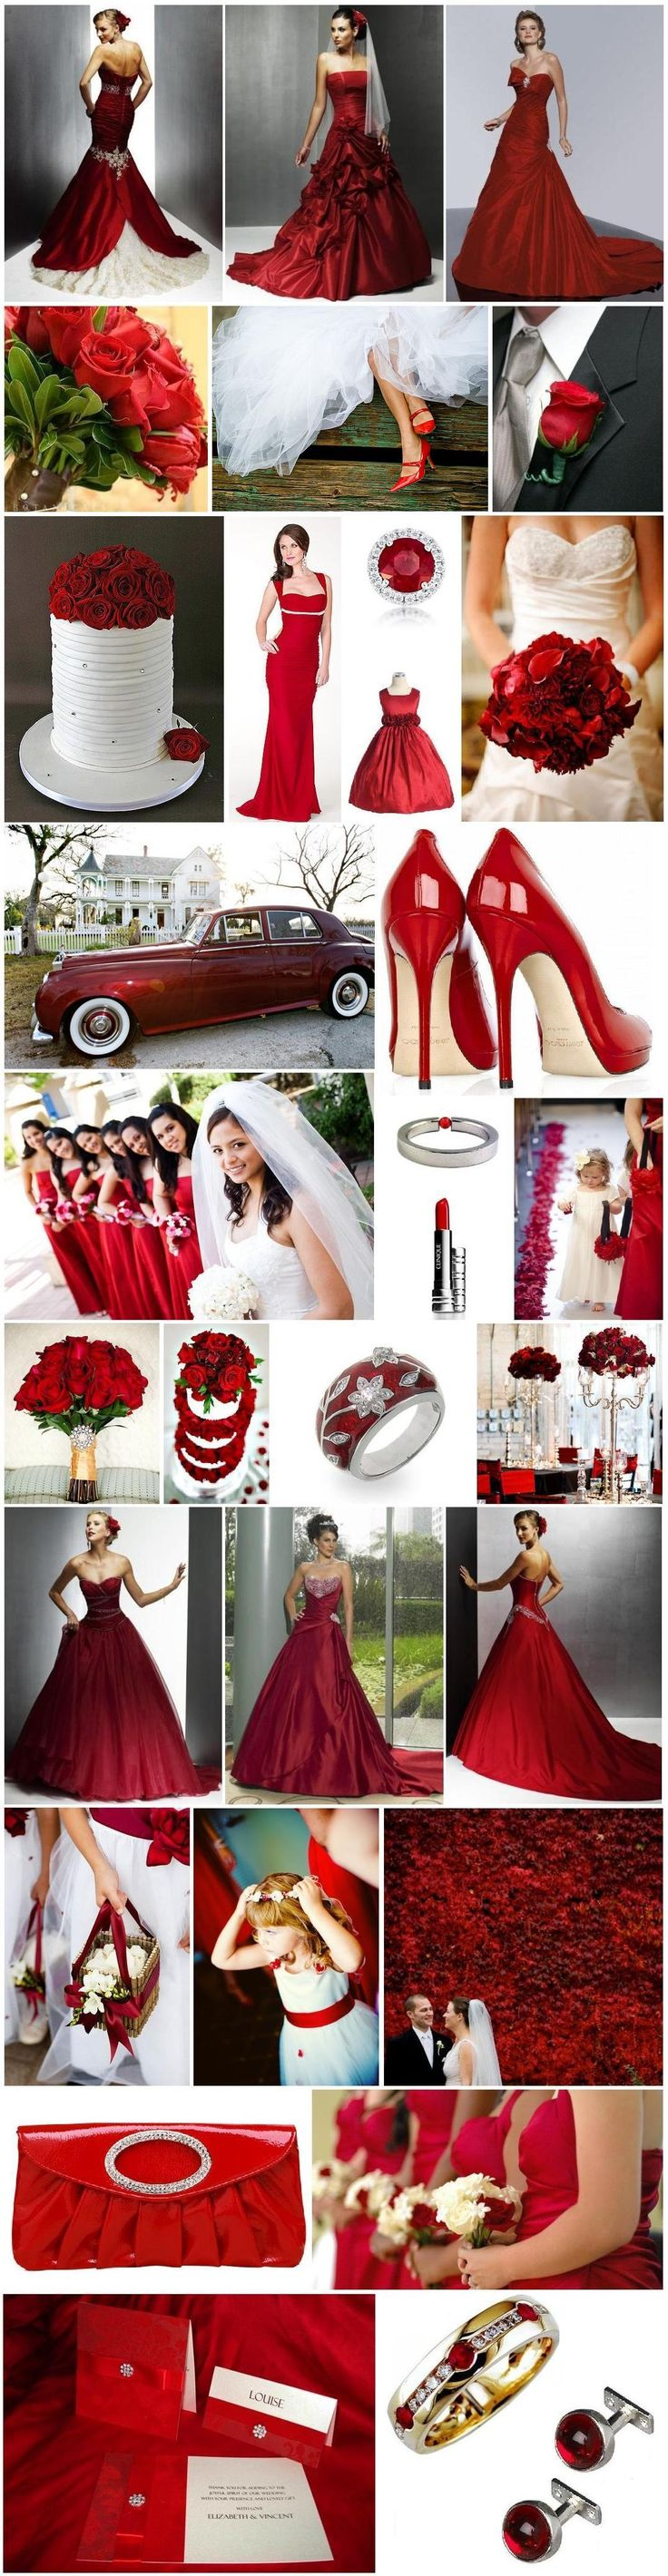 Red Inspiration  http://blacktieweddinginvitations.com.au/blog/archives/3096